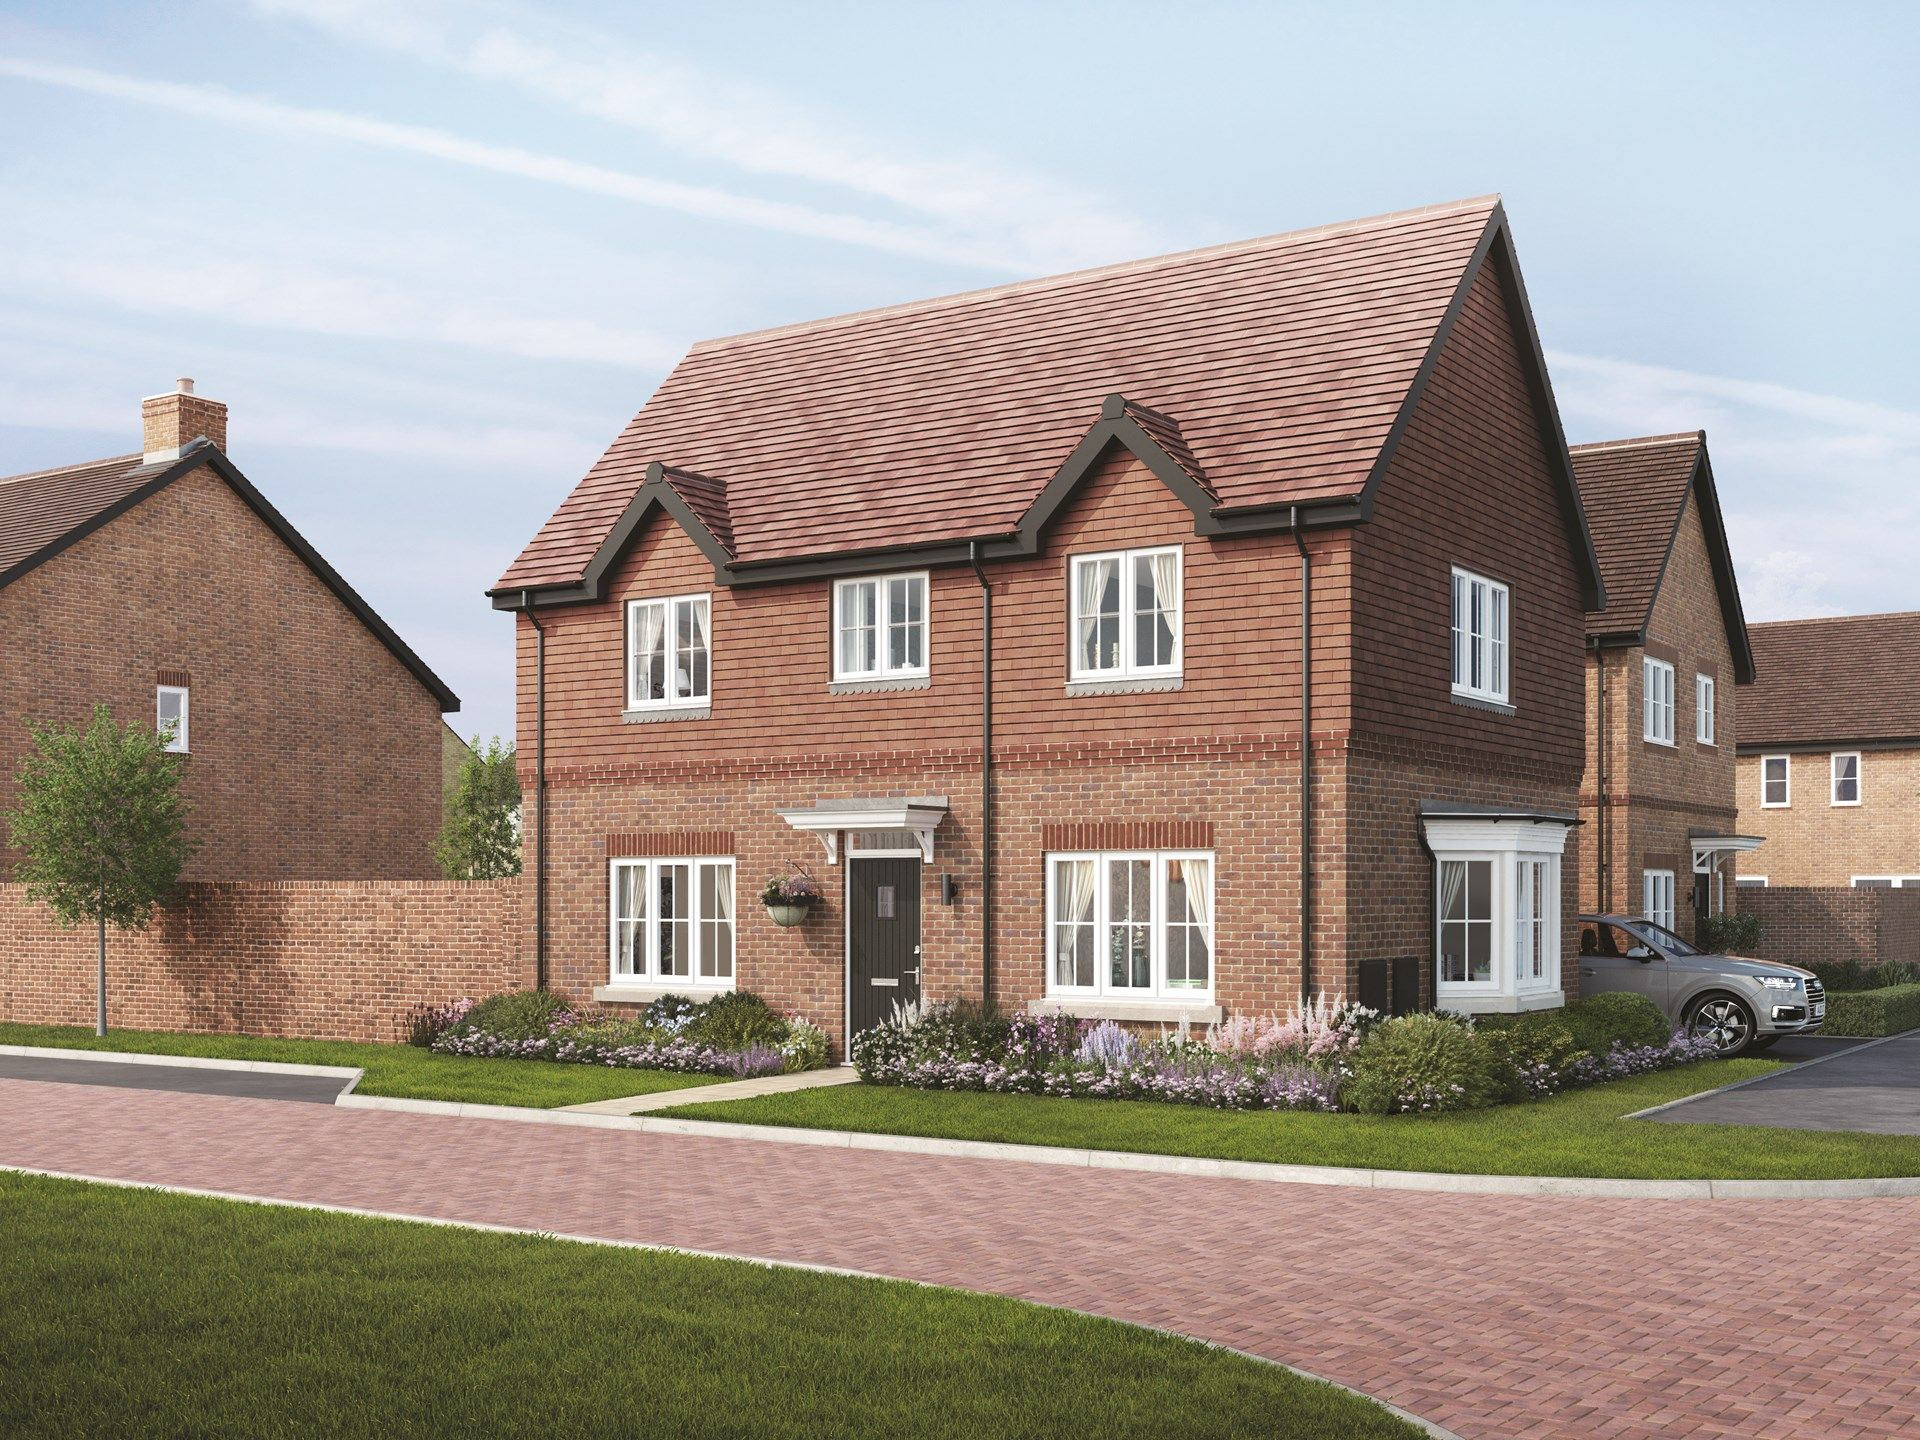 Property photo 1 of 2. New Monks Park, Lancing